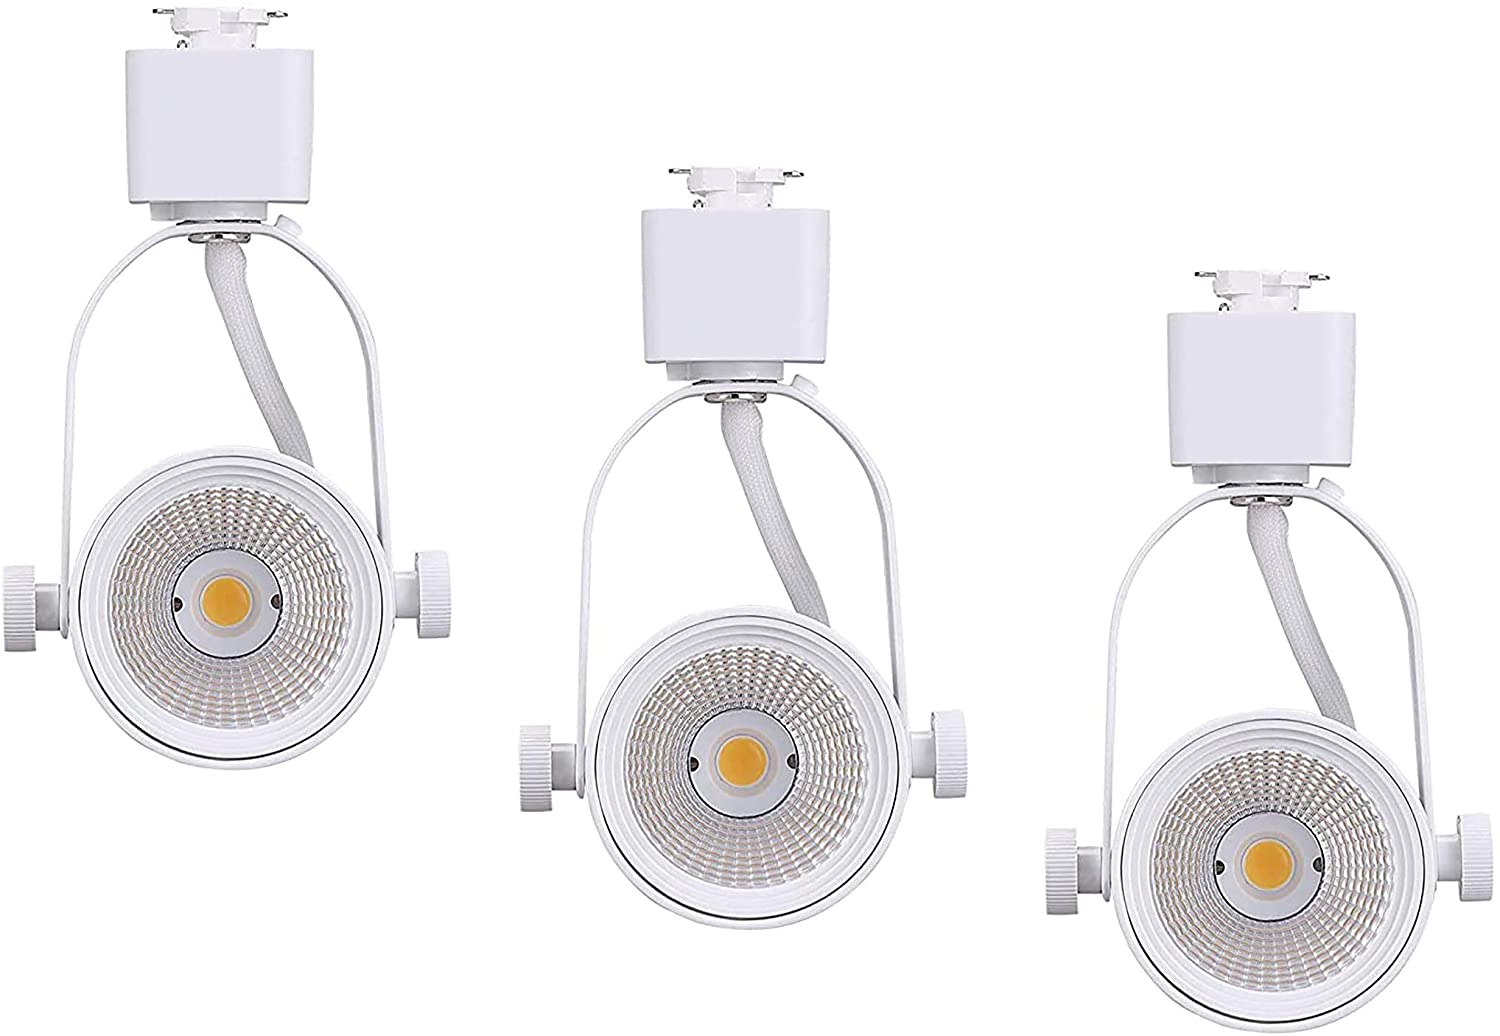 Cloudy Bay Juno Type Max 48% OFF LED Track Light Warm 3000K Online limited product 10W CRI Head 90+